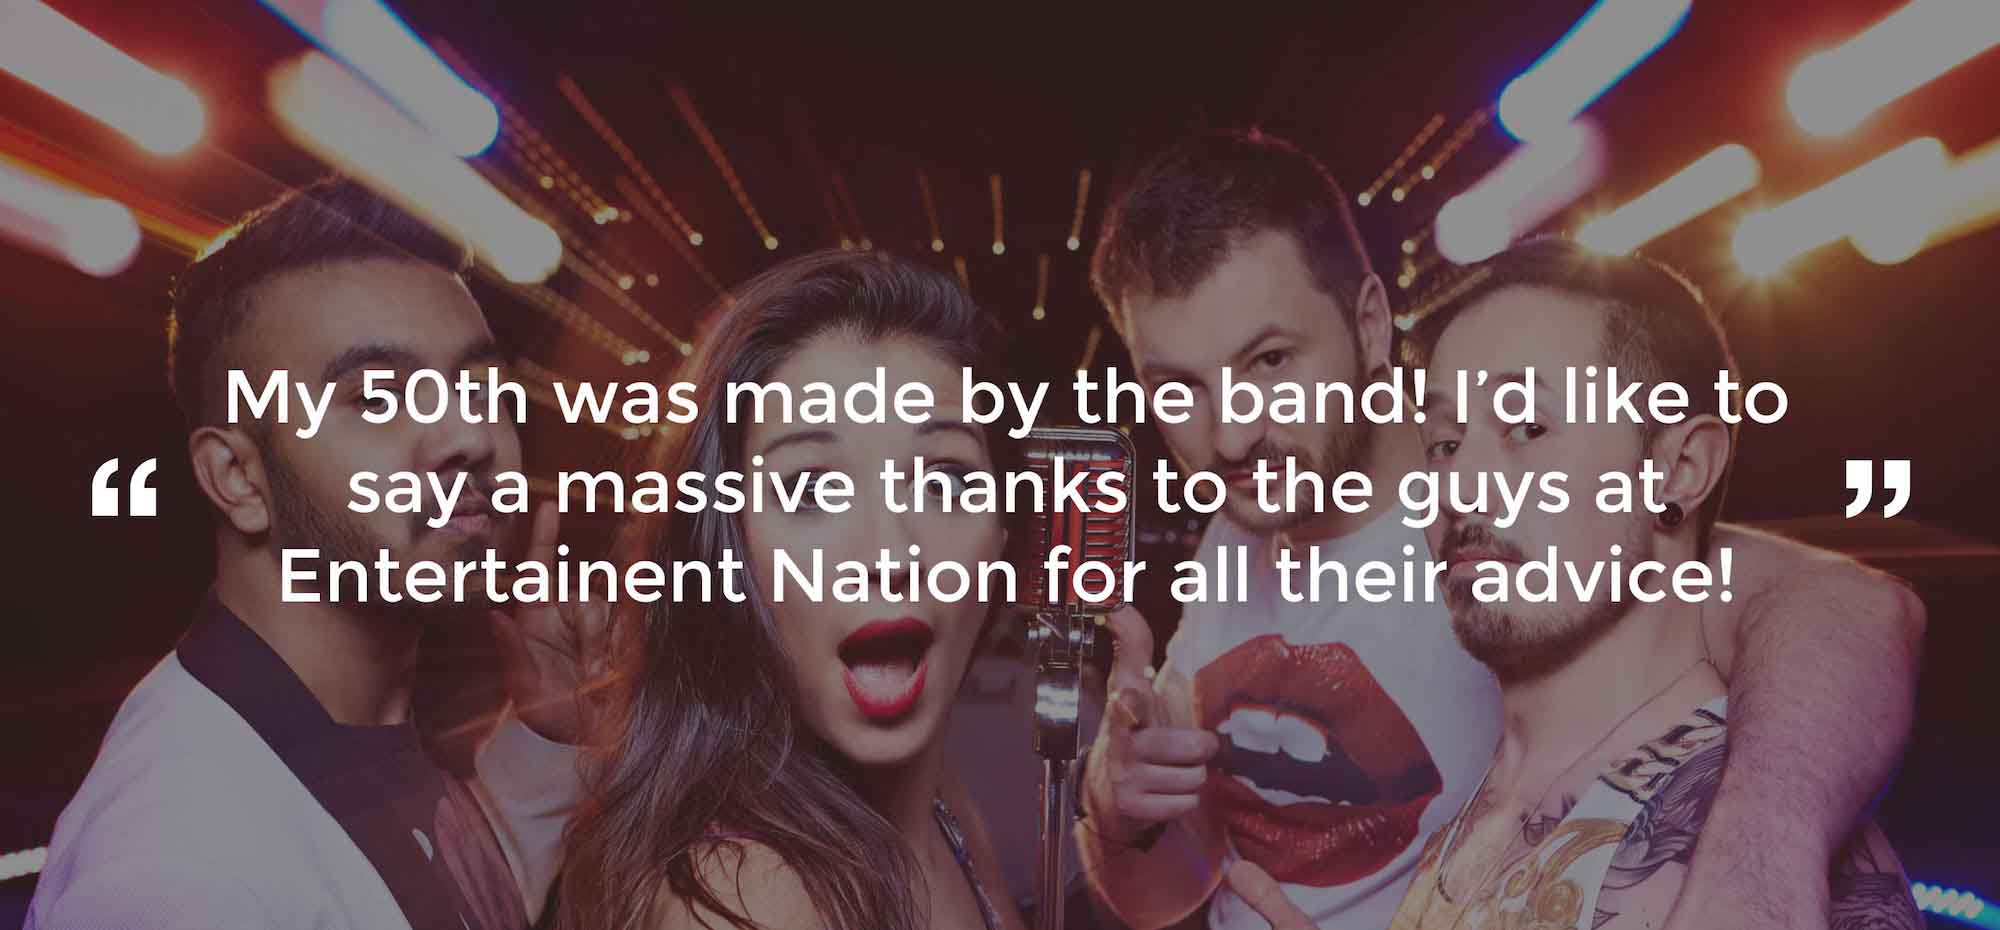 Client Review of a Party Band Hampshire